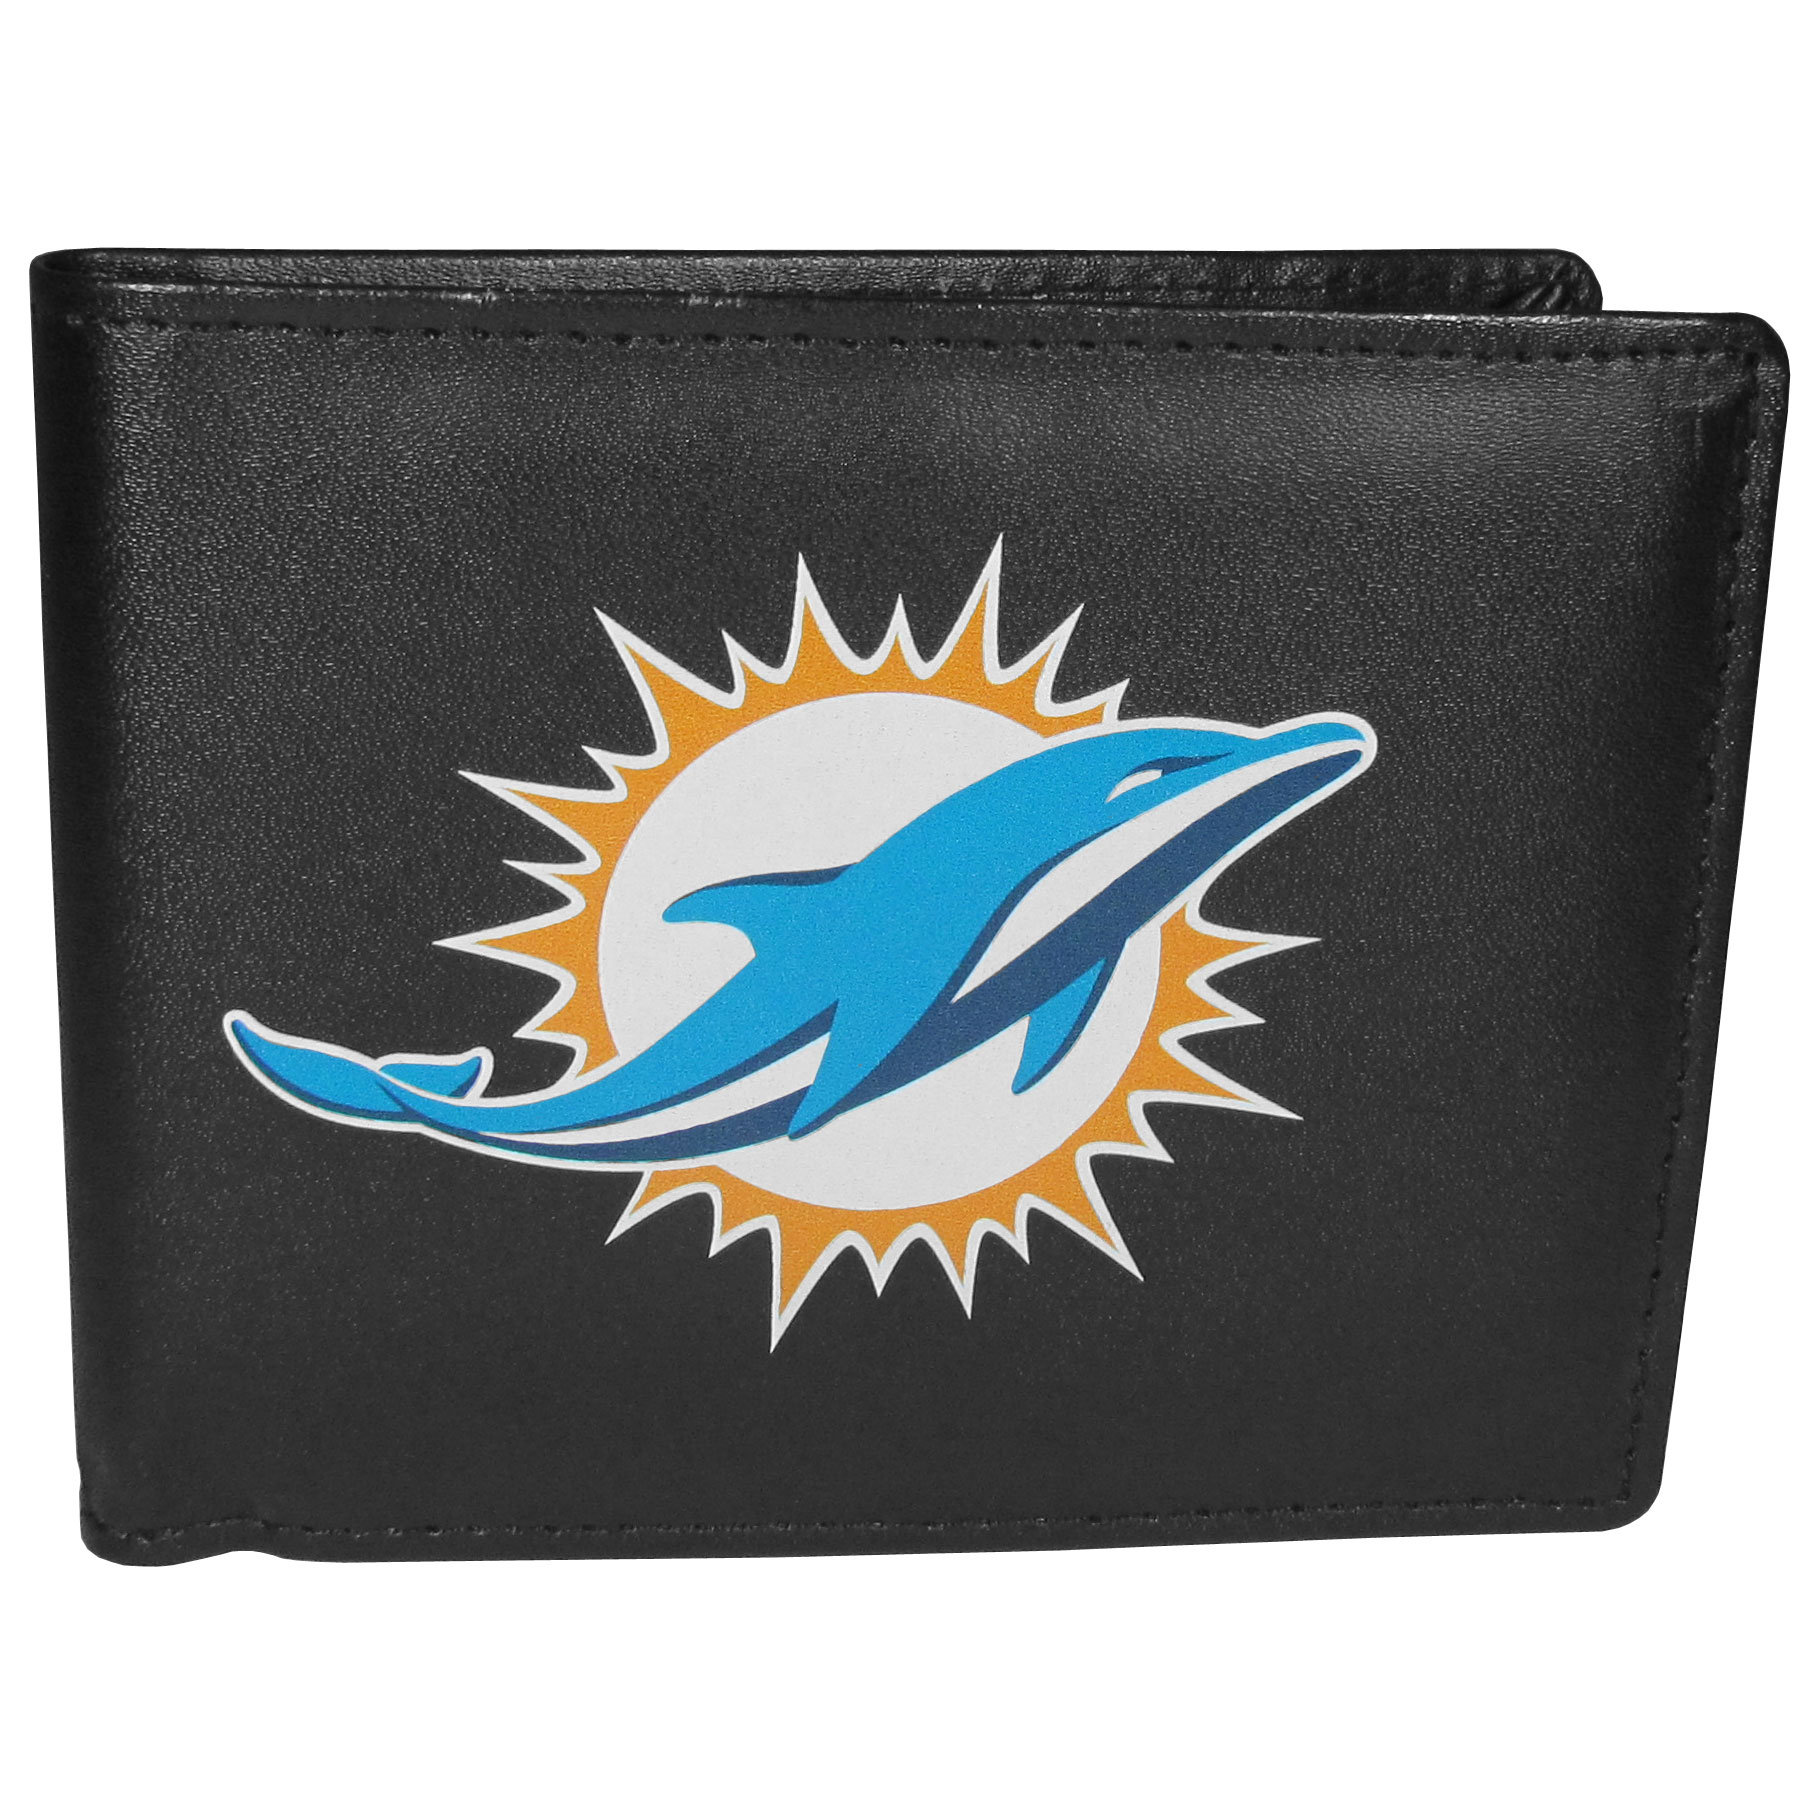 Miami Dolphins Leather Bi-fold Wallet, Large Logo - Our classic fine leather bi-fold wallet is meticulously crafted with genuine leather that will age beautifully so you will have a quality wallet for years to come. The wallet opens to a large, billfold pocket and numerous credit card slots and has a convenient windowed ID slot. The front of the wallet features an extra large Miami Dolphins printed logo.